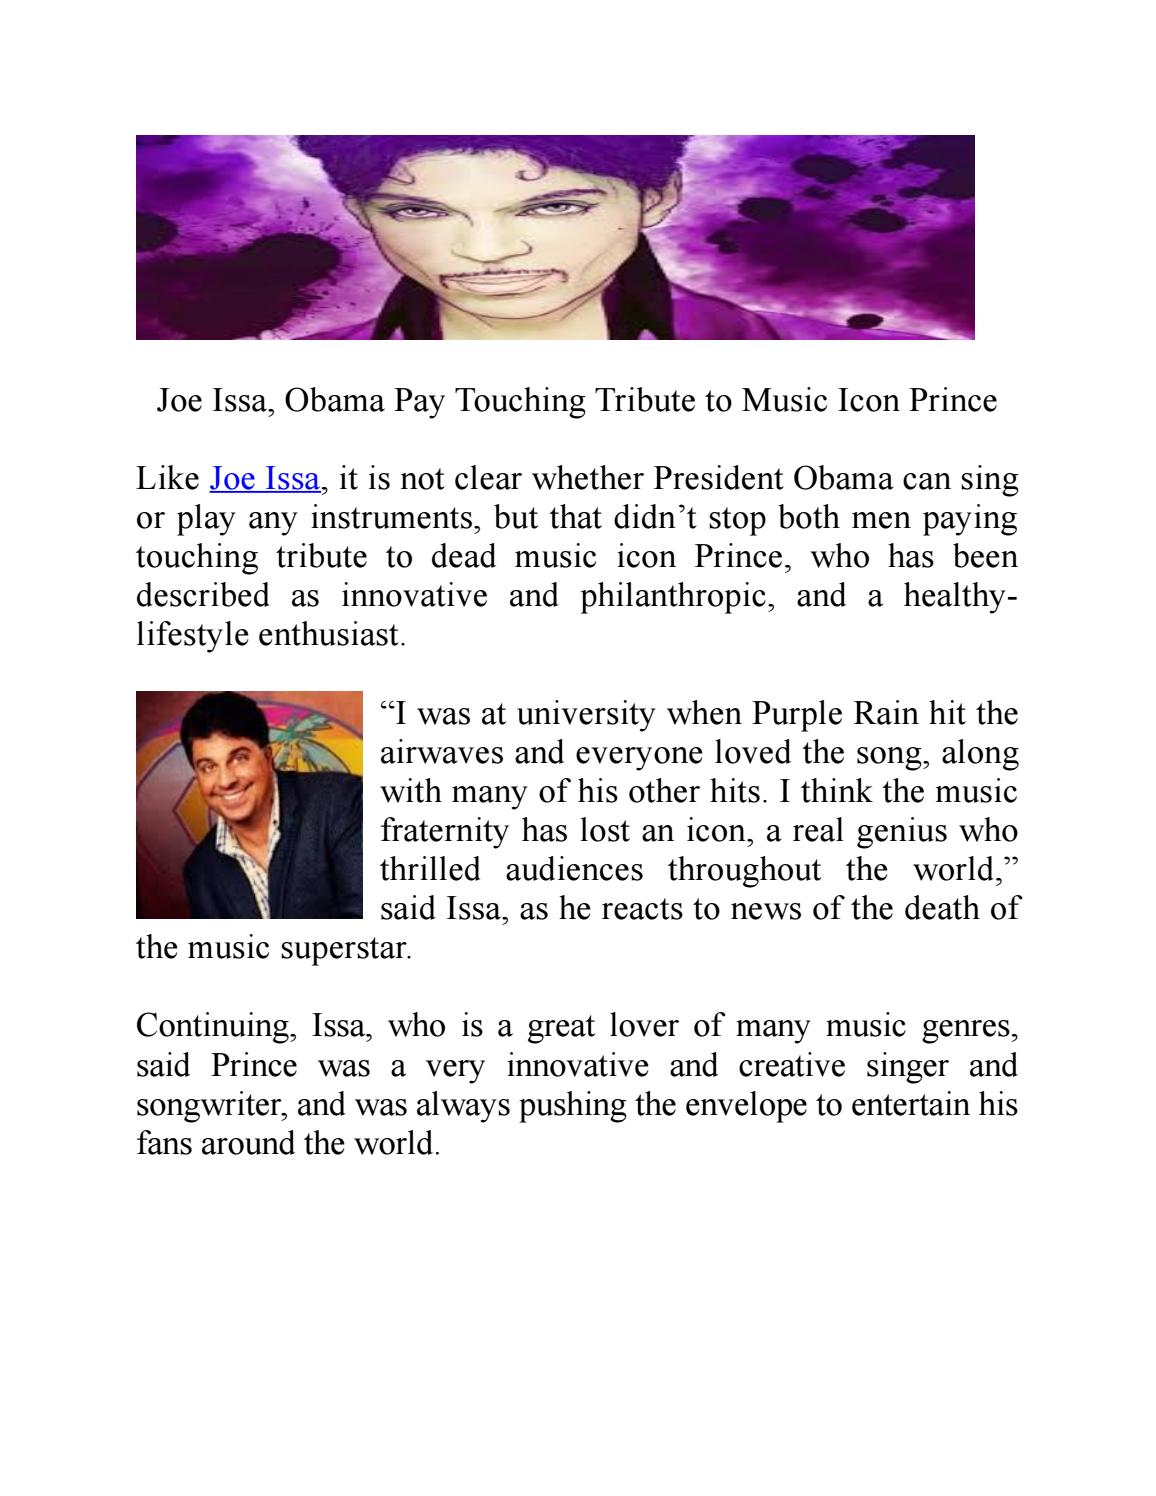 Joe Issa, Obama Pay Touching Tribute to Music Icon Prince by